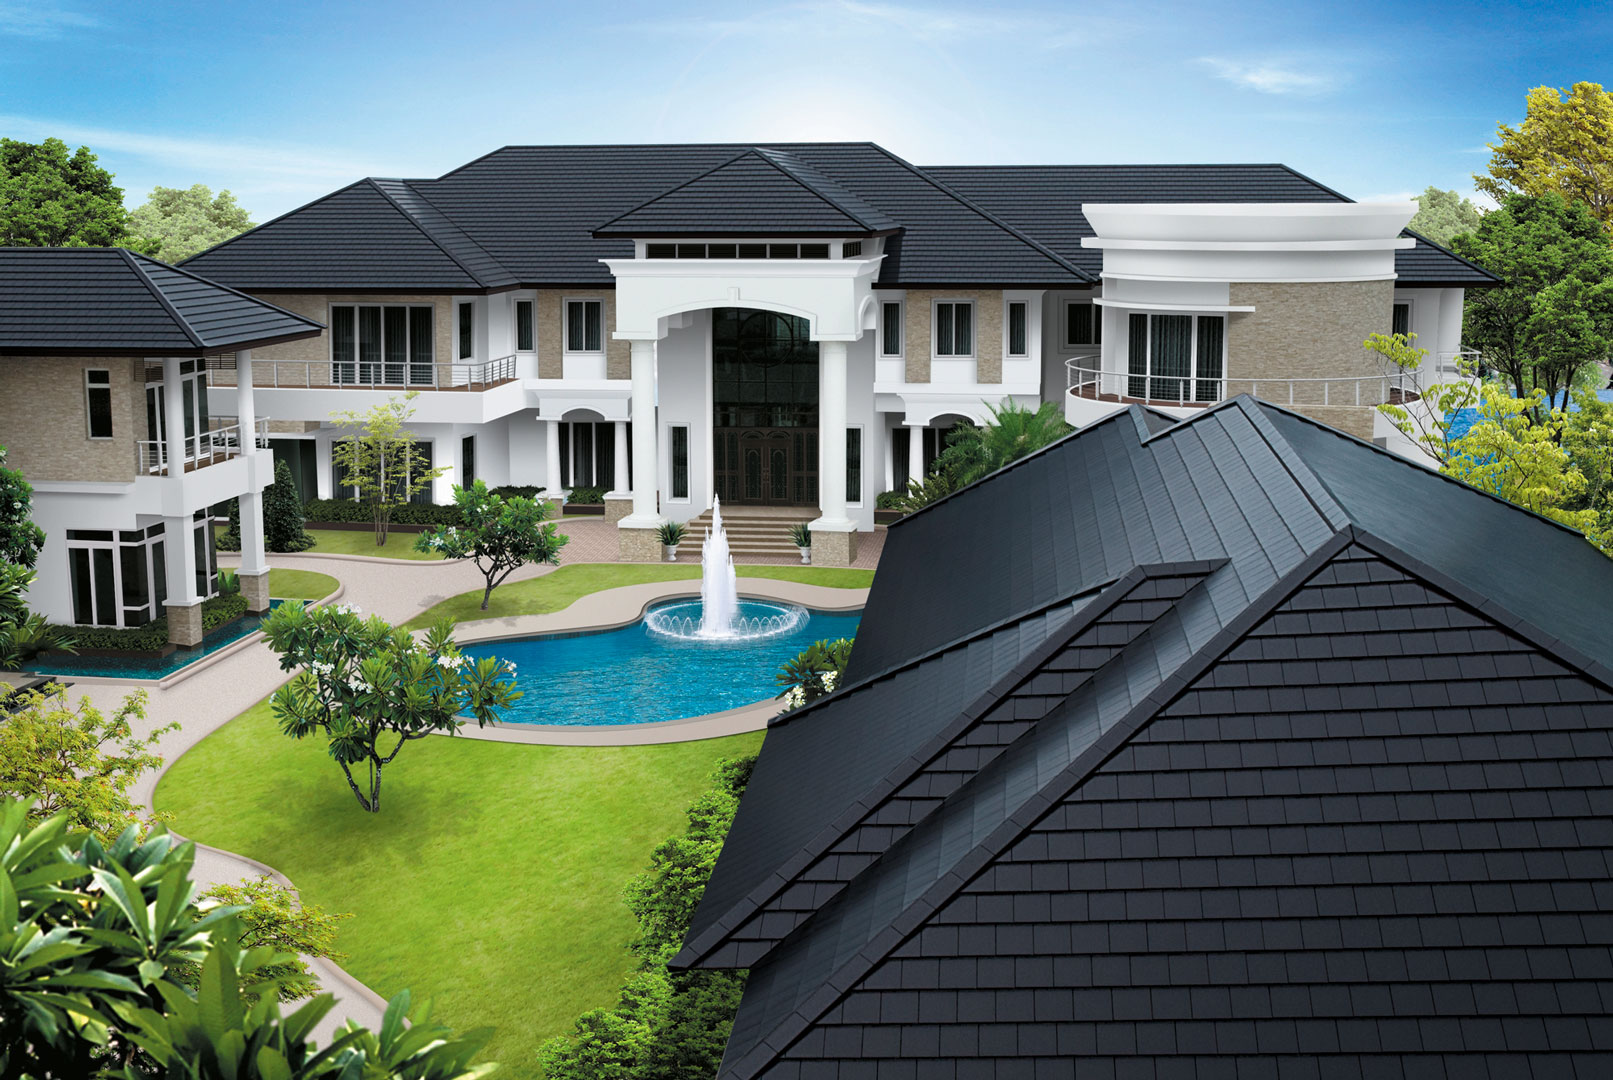 SCG Excella Modern - High quality modern ceramic roof